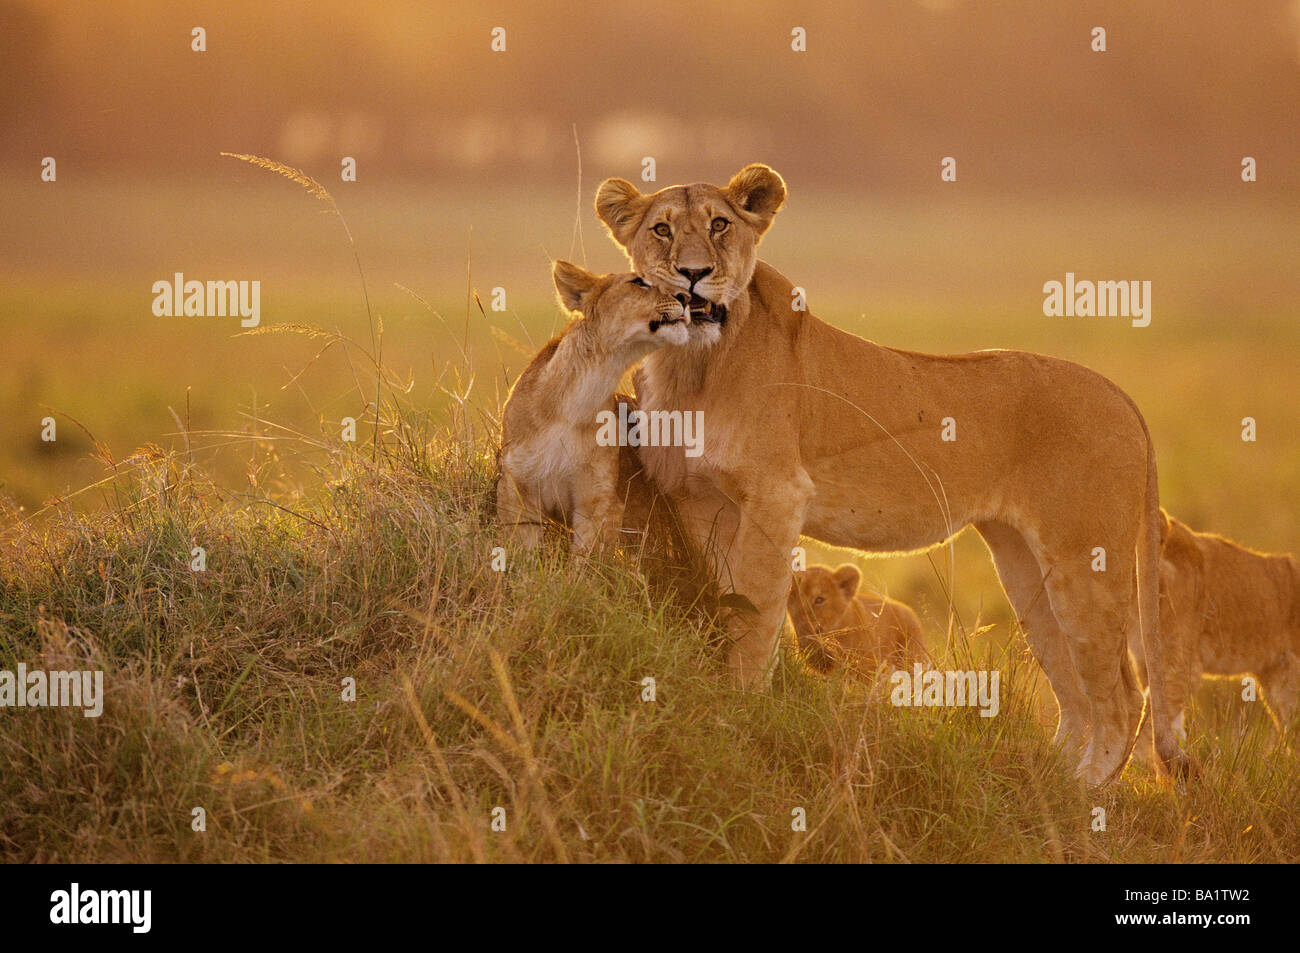 Sunset Close-up Lion madre e Cub Immagini Stock